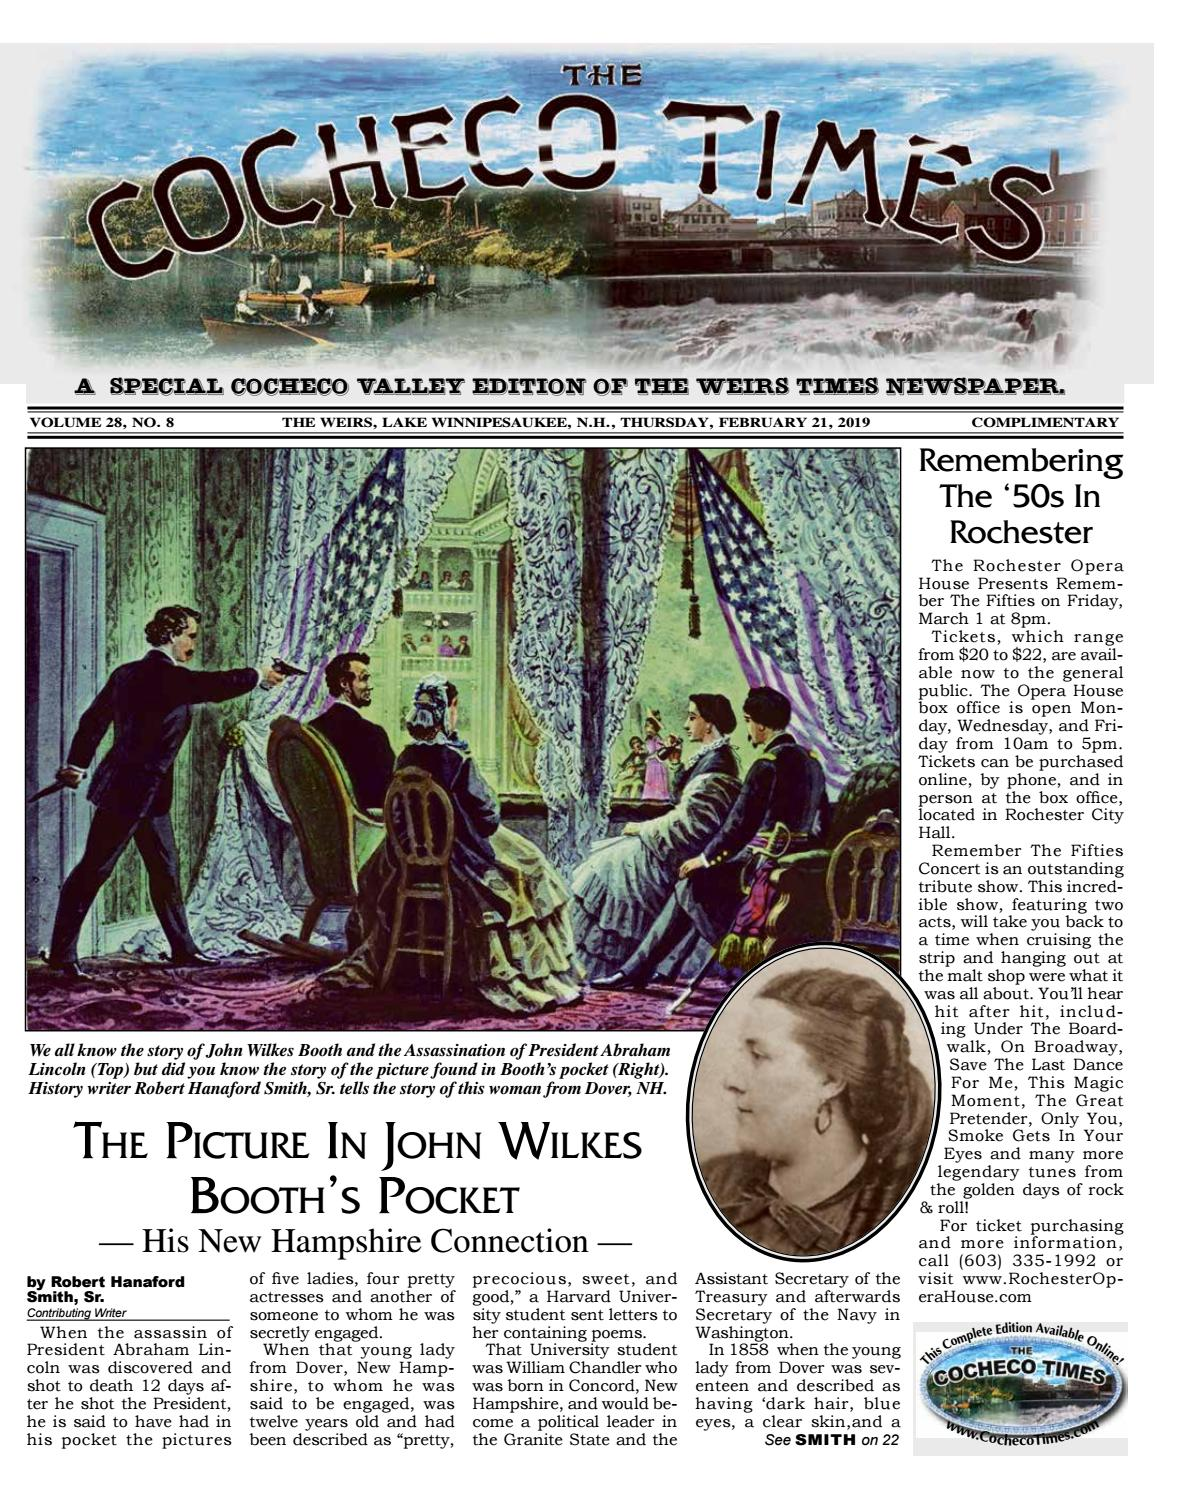 17 best images about tableaux faux iron window treatments.htm 02 21 19 cocheco times by the weirs publishing company issuu  02 21 19 cocheco times by the weirs